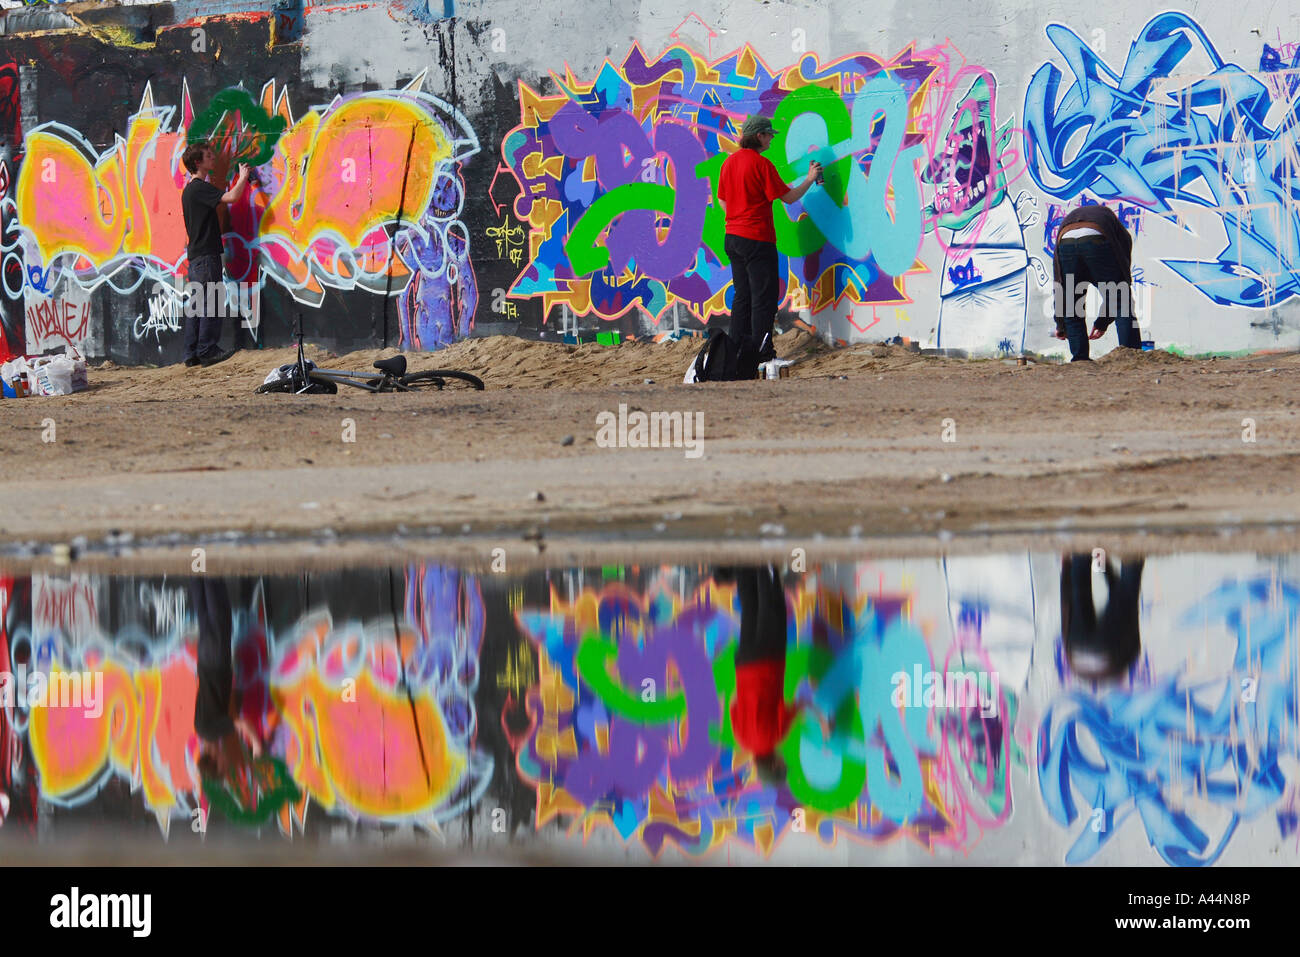 Young Graffitti artists painting a wall on disused land - Stock Image